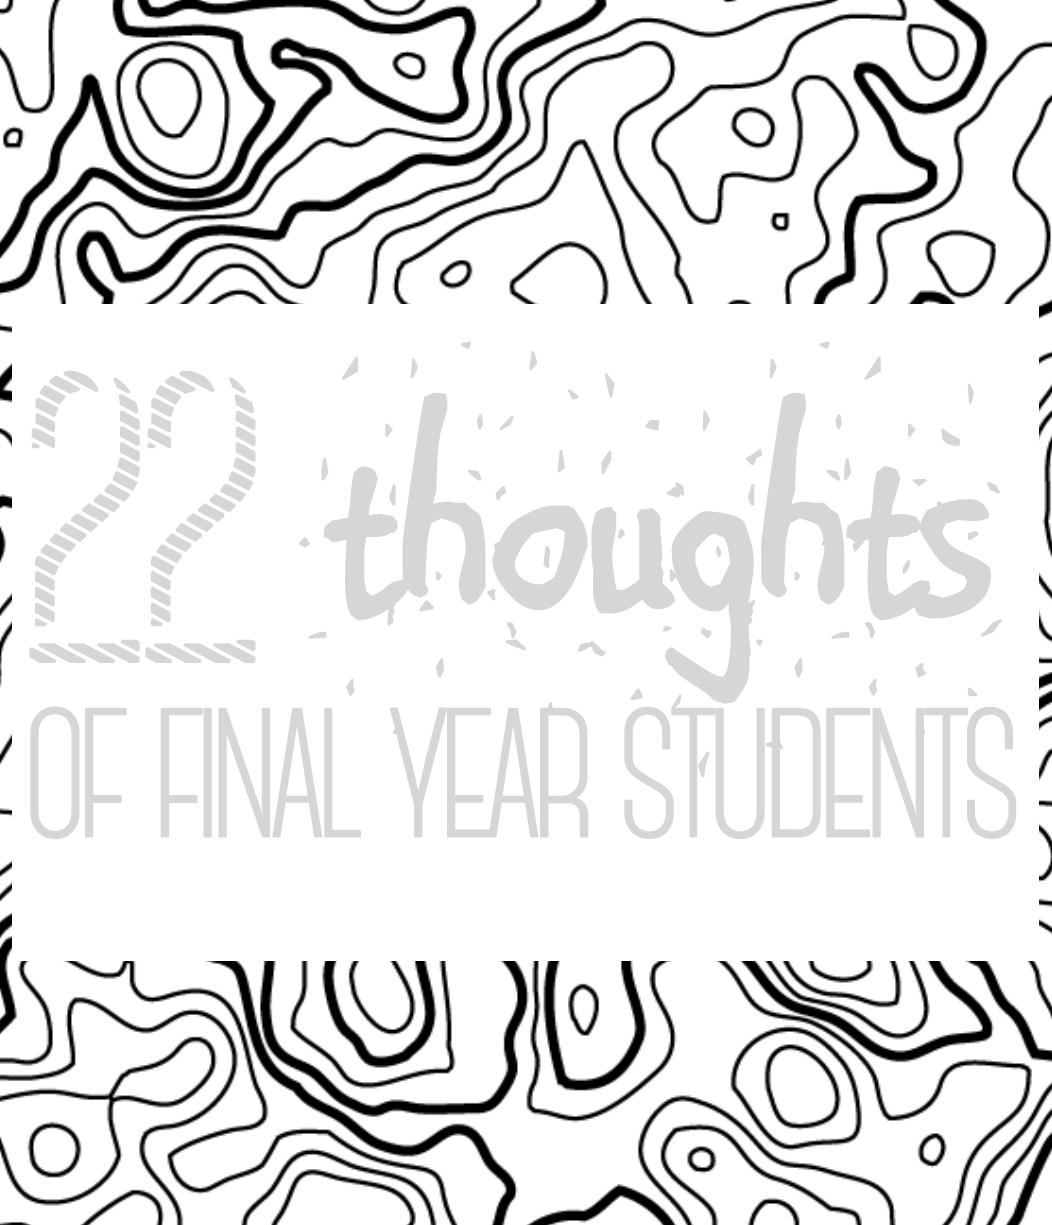 22 thoughts of final year university students